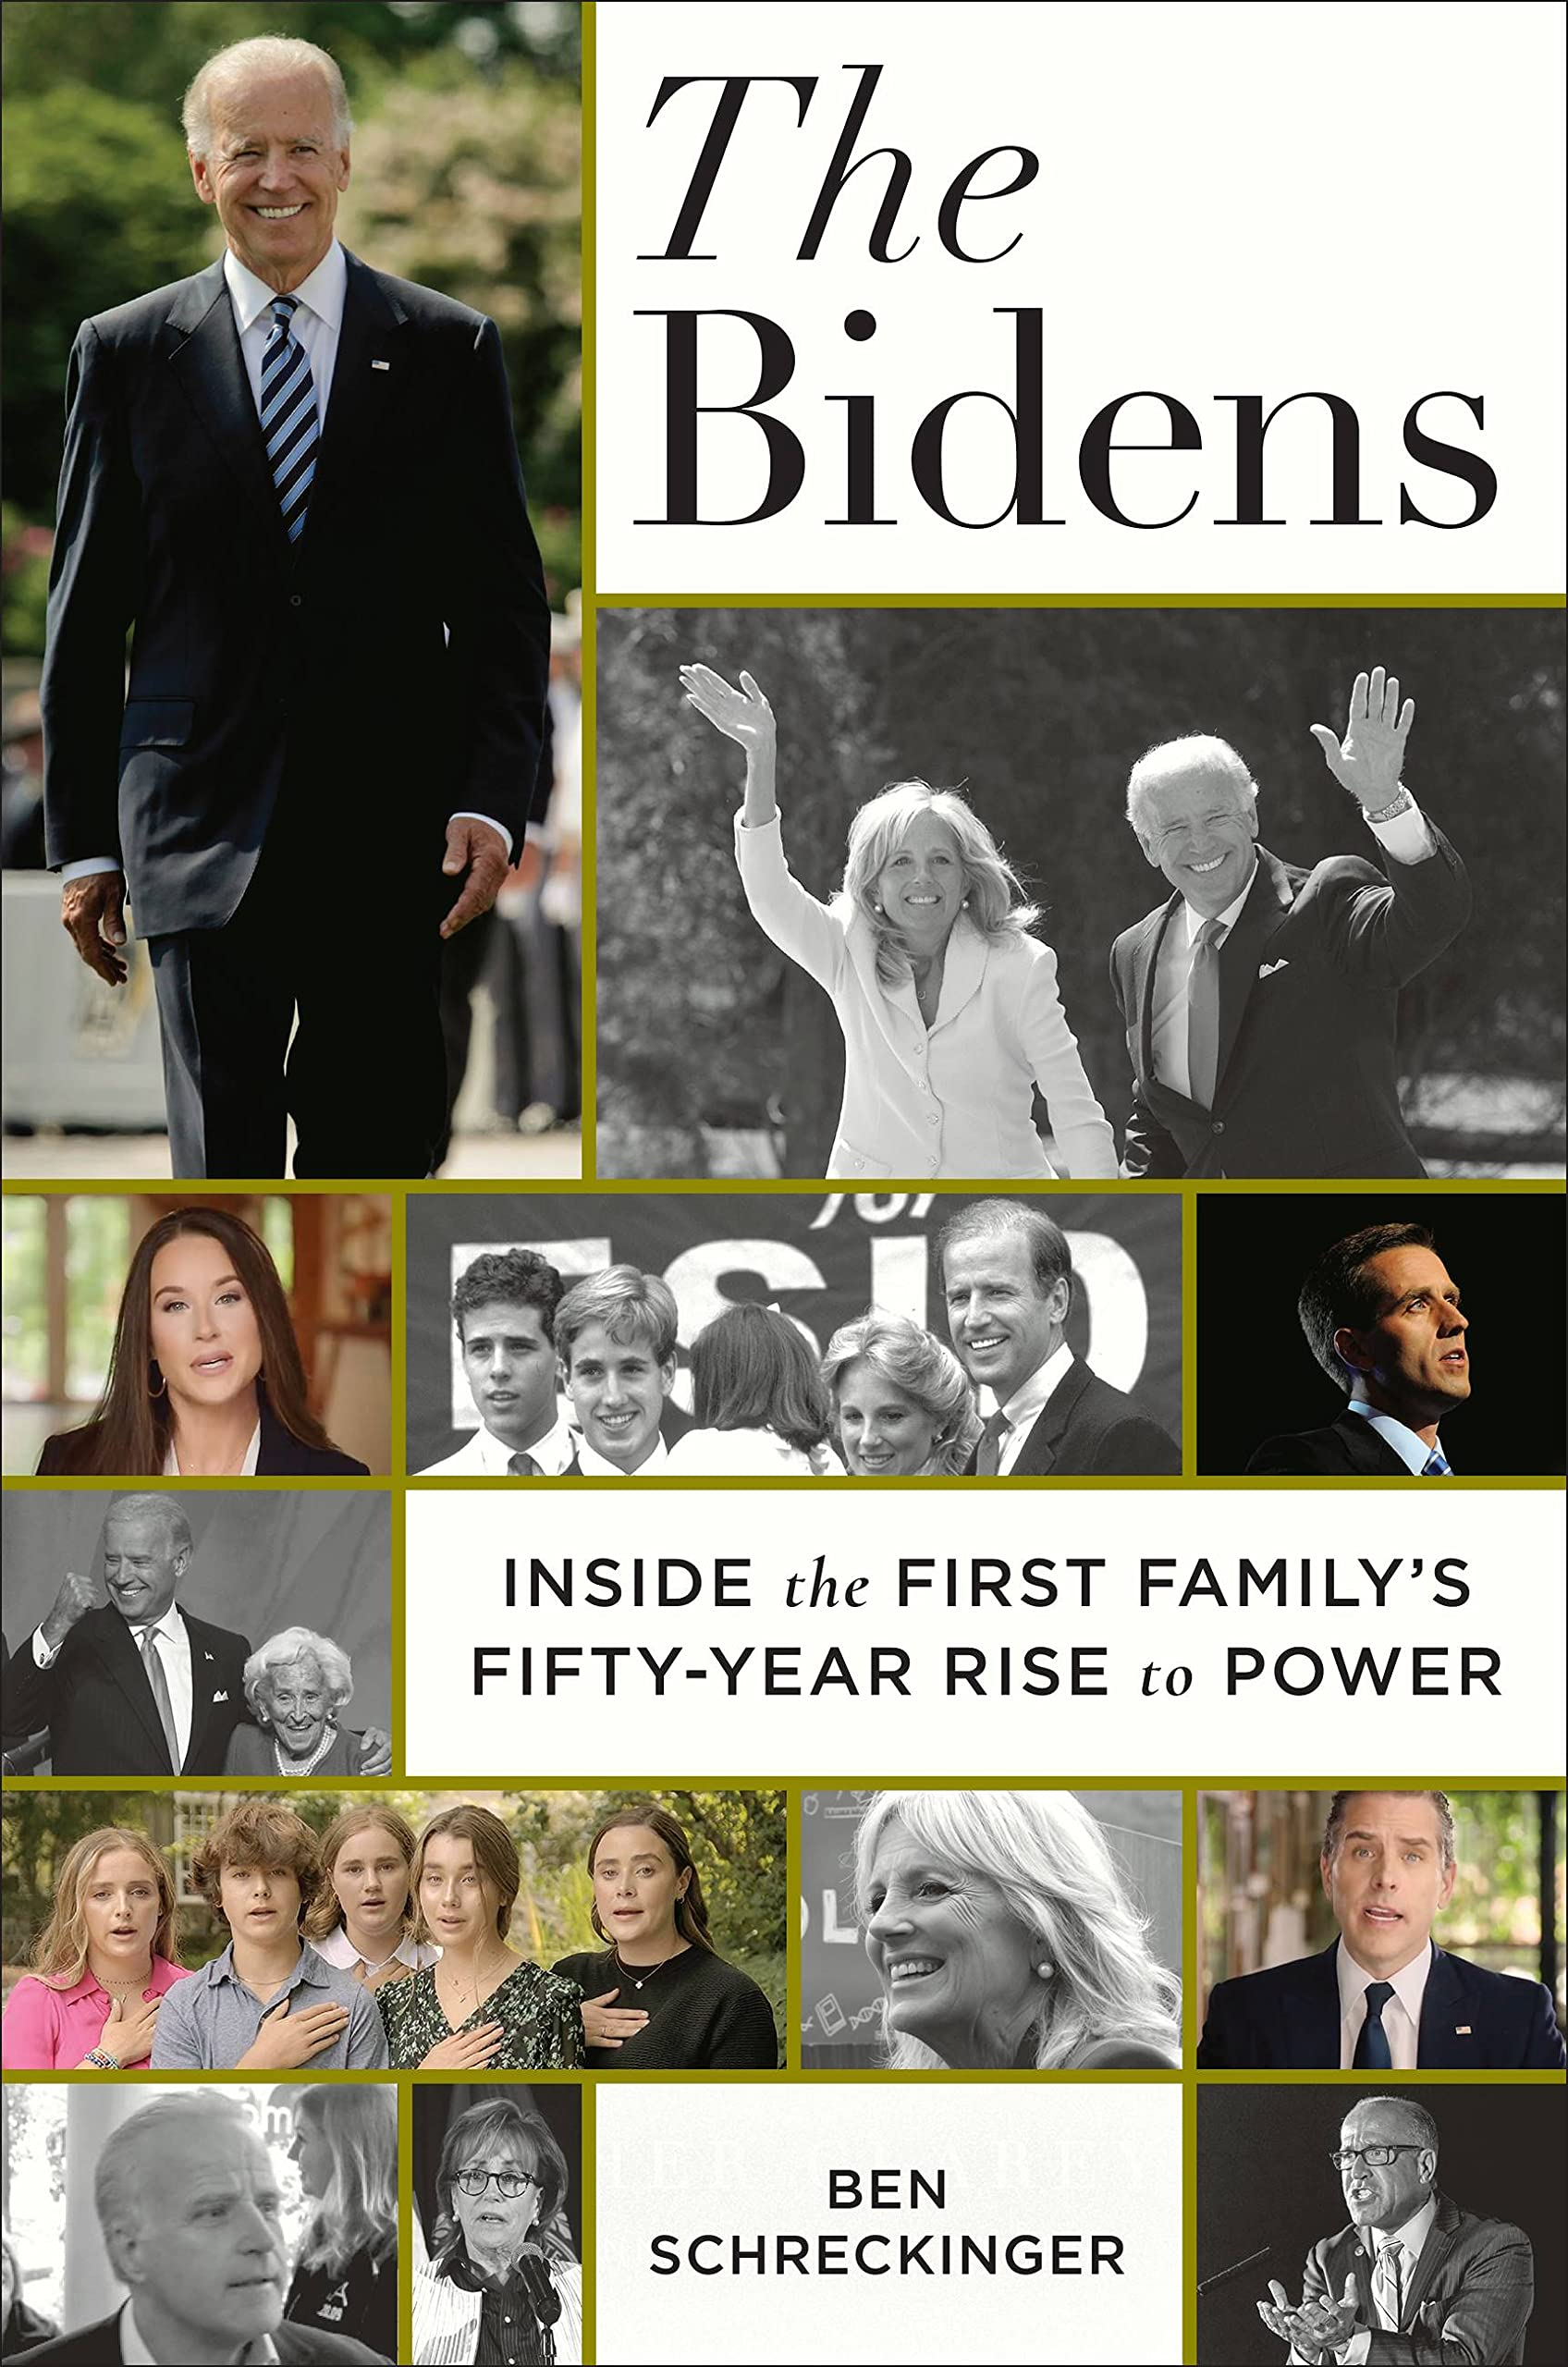 Amazon.com: The Bidens: Inside the First Family's Fifty-Year Rise to Power:  9781538738009: Schreckinger, Ben: Books